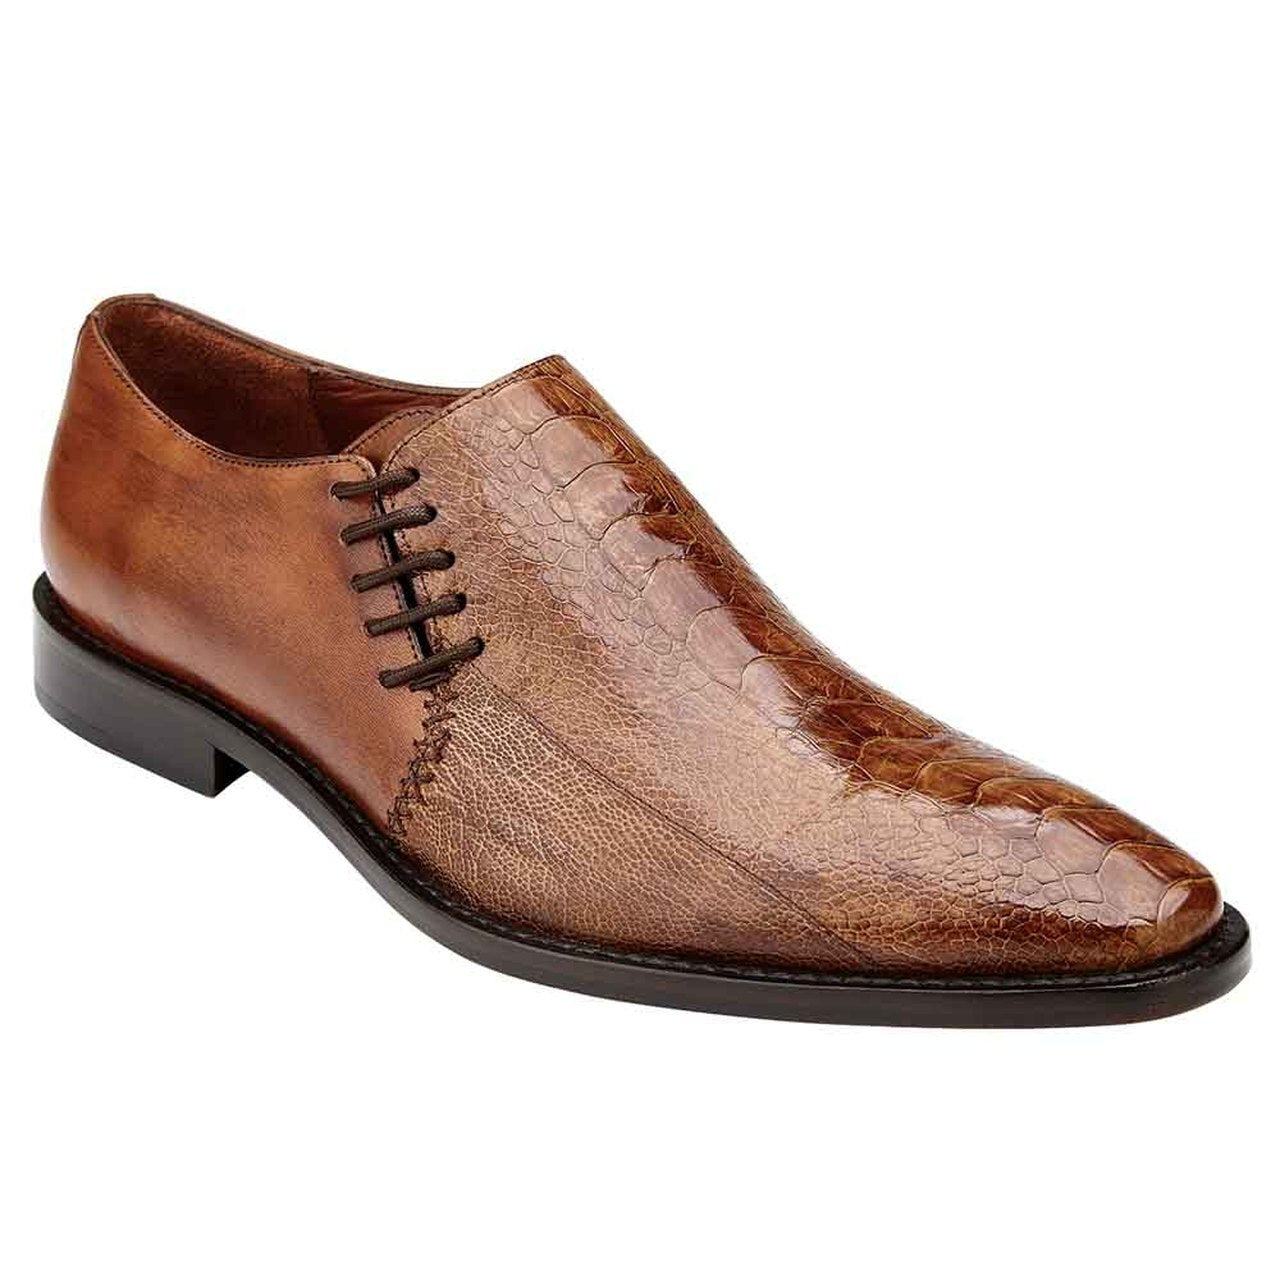 Belvedere Savana - Genuine Ostrich & Italian Calf Men's Slip On Shoes - Dapperfam.com